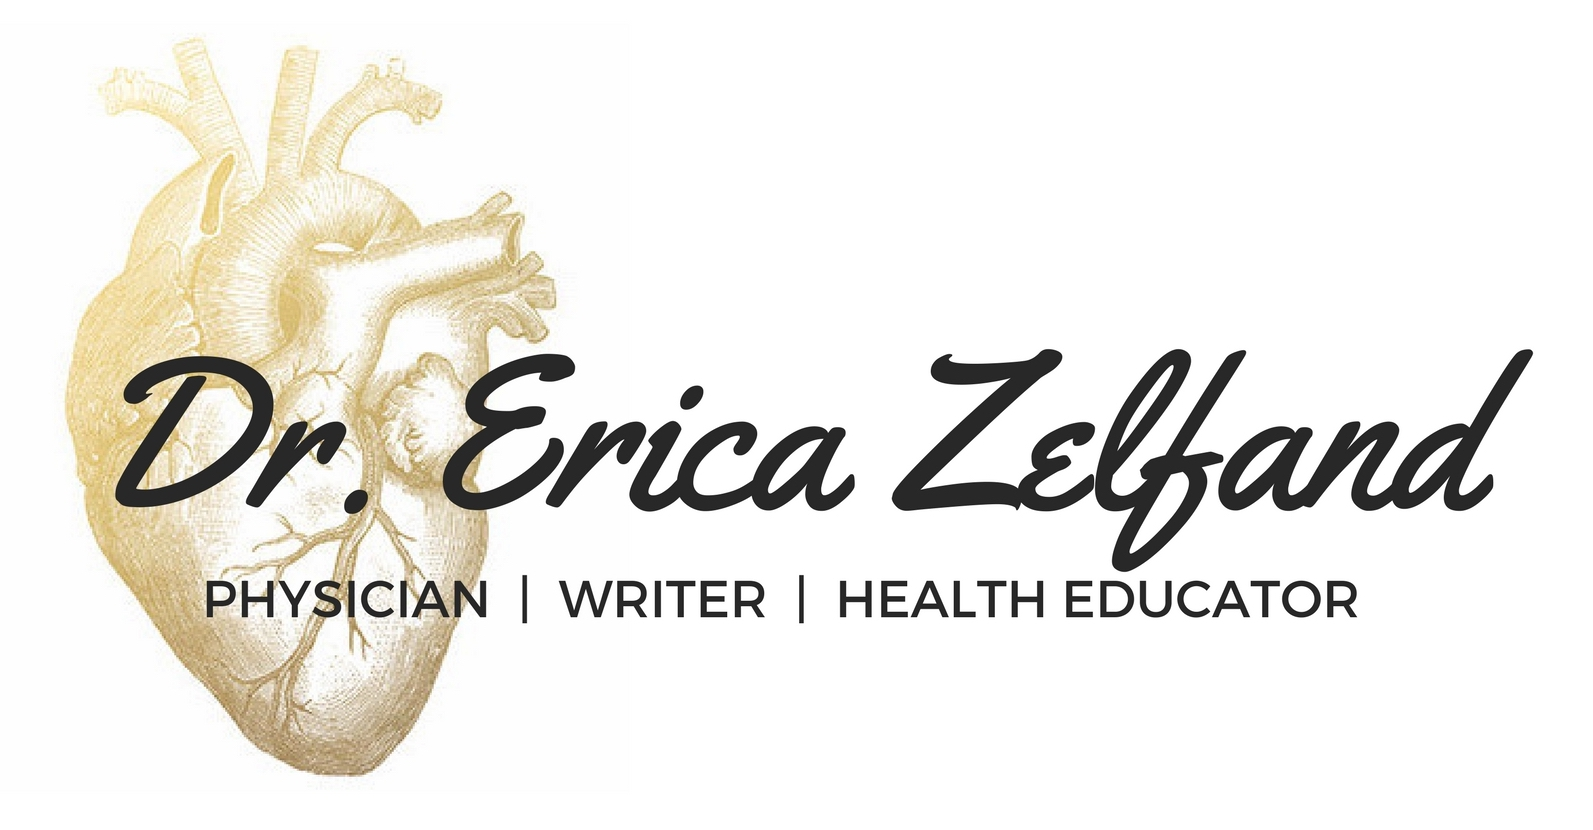 Dr. Erica Zelfand is an integrative and functional medicine physician specializing in hormones, digestive disorders, autoimmune diseases, pediatrics, & preventative medicine.